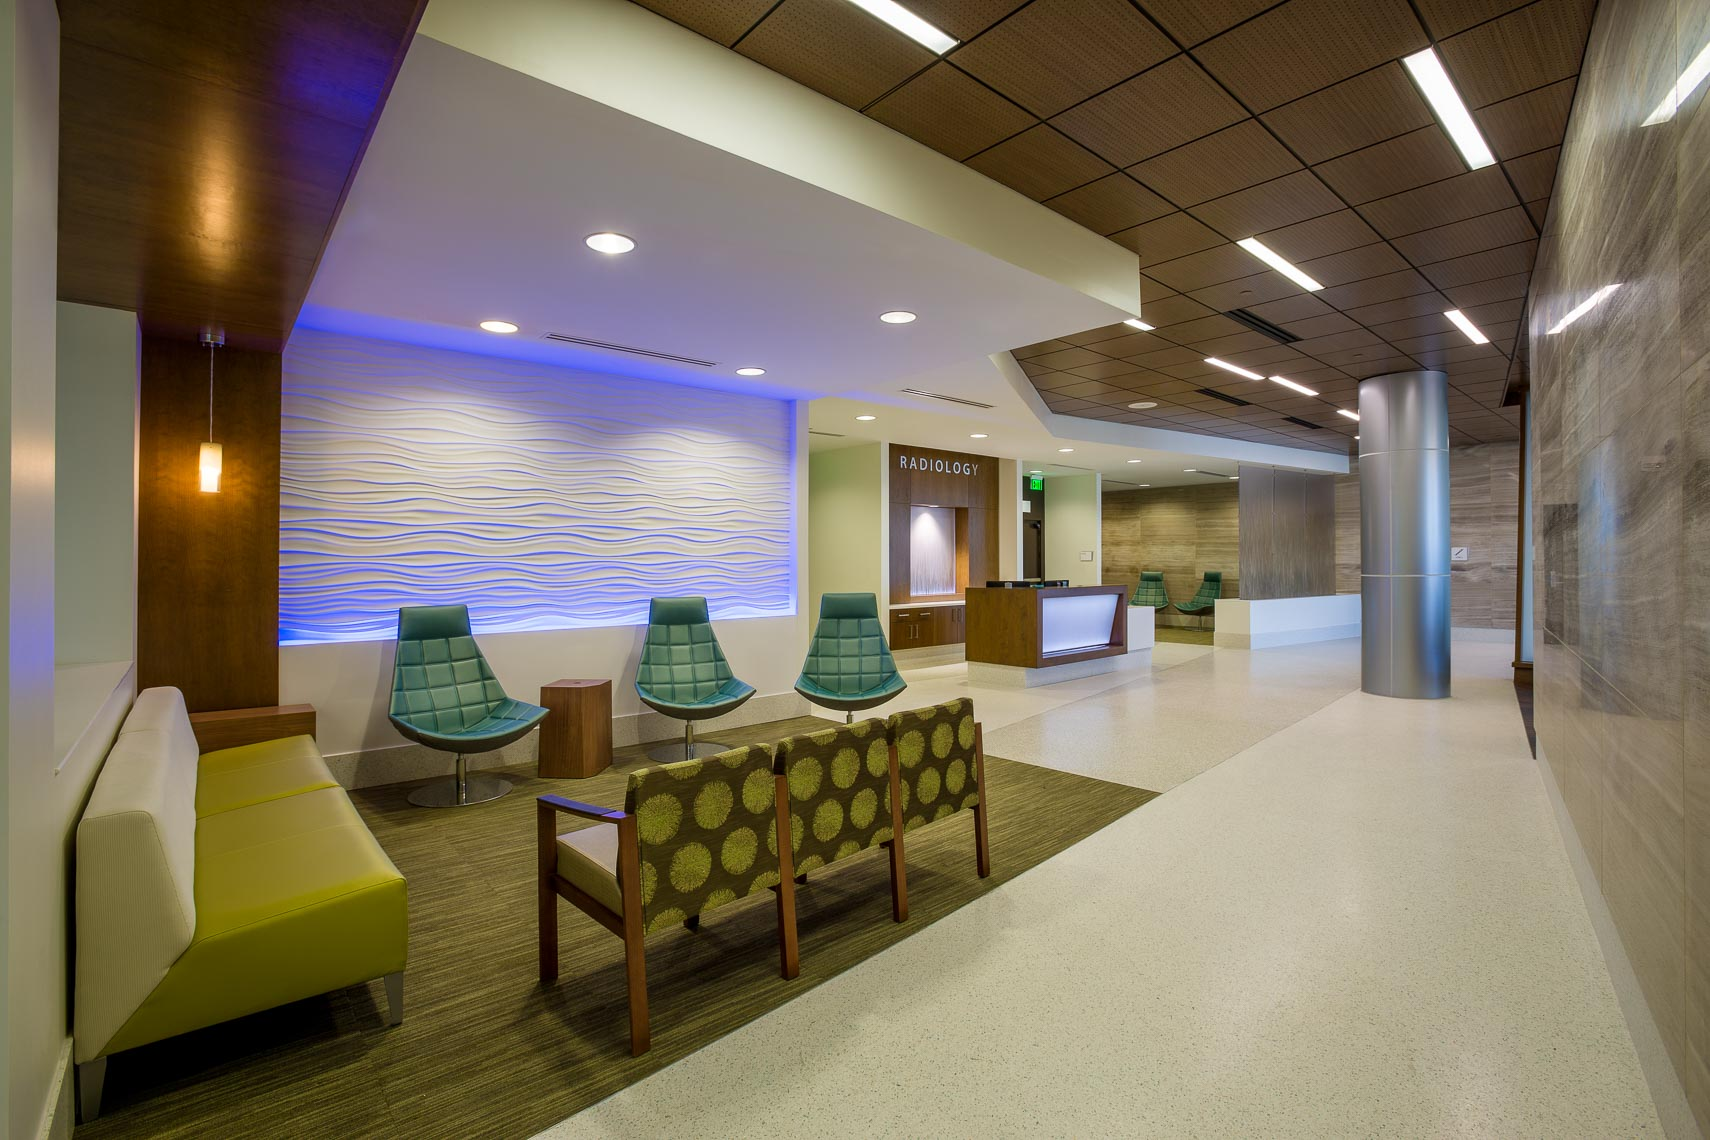 Hospital Architectural Interior